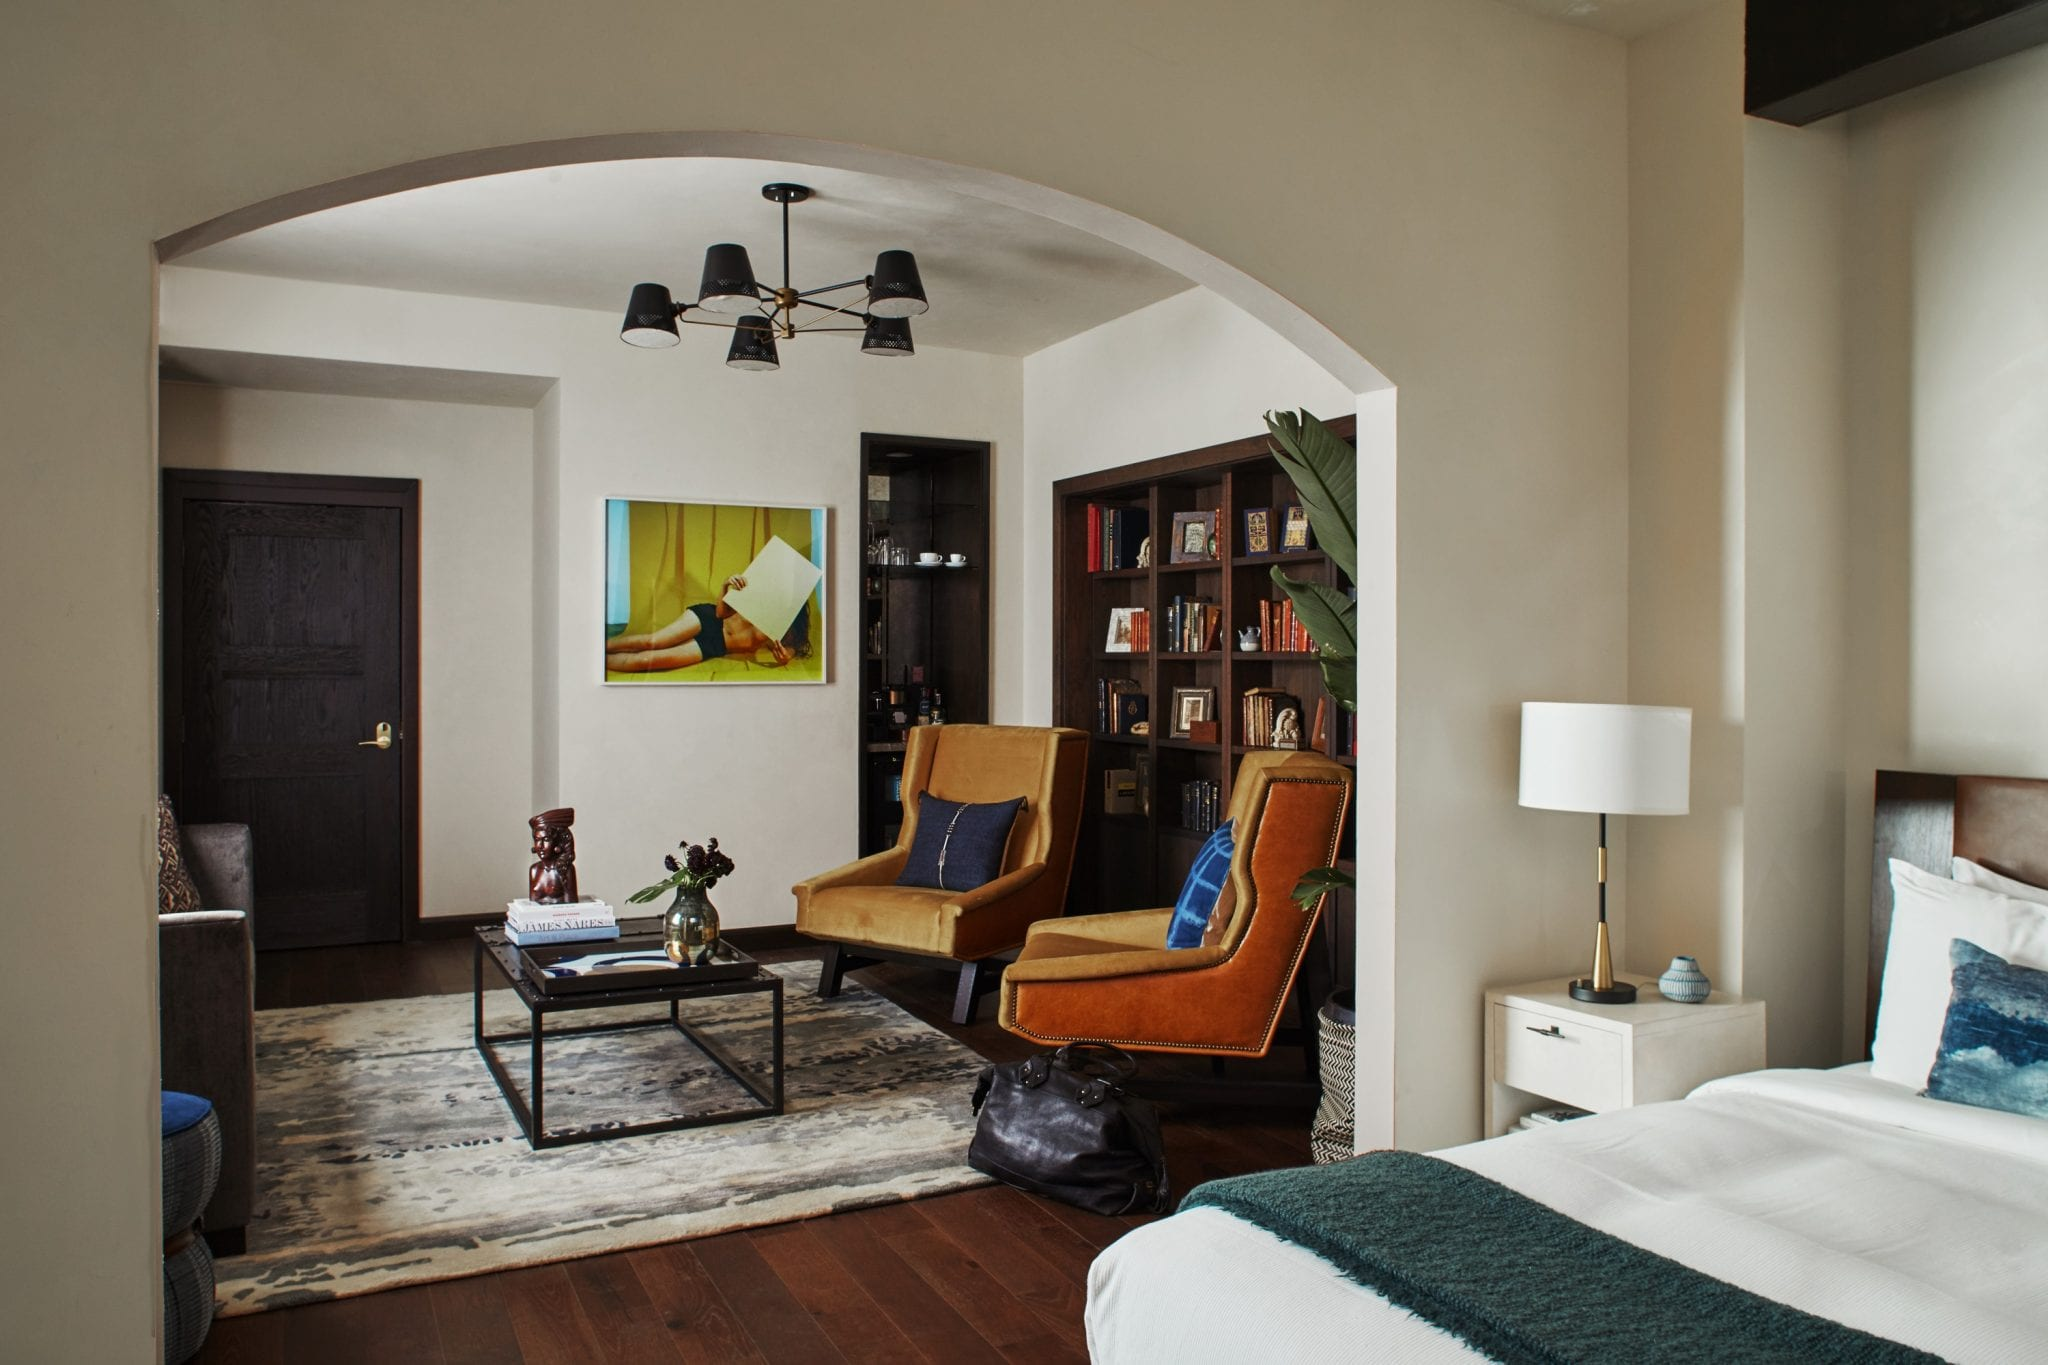 hotel suite with view from bedroom to living room with chairs and coffee table